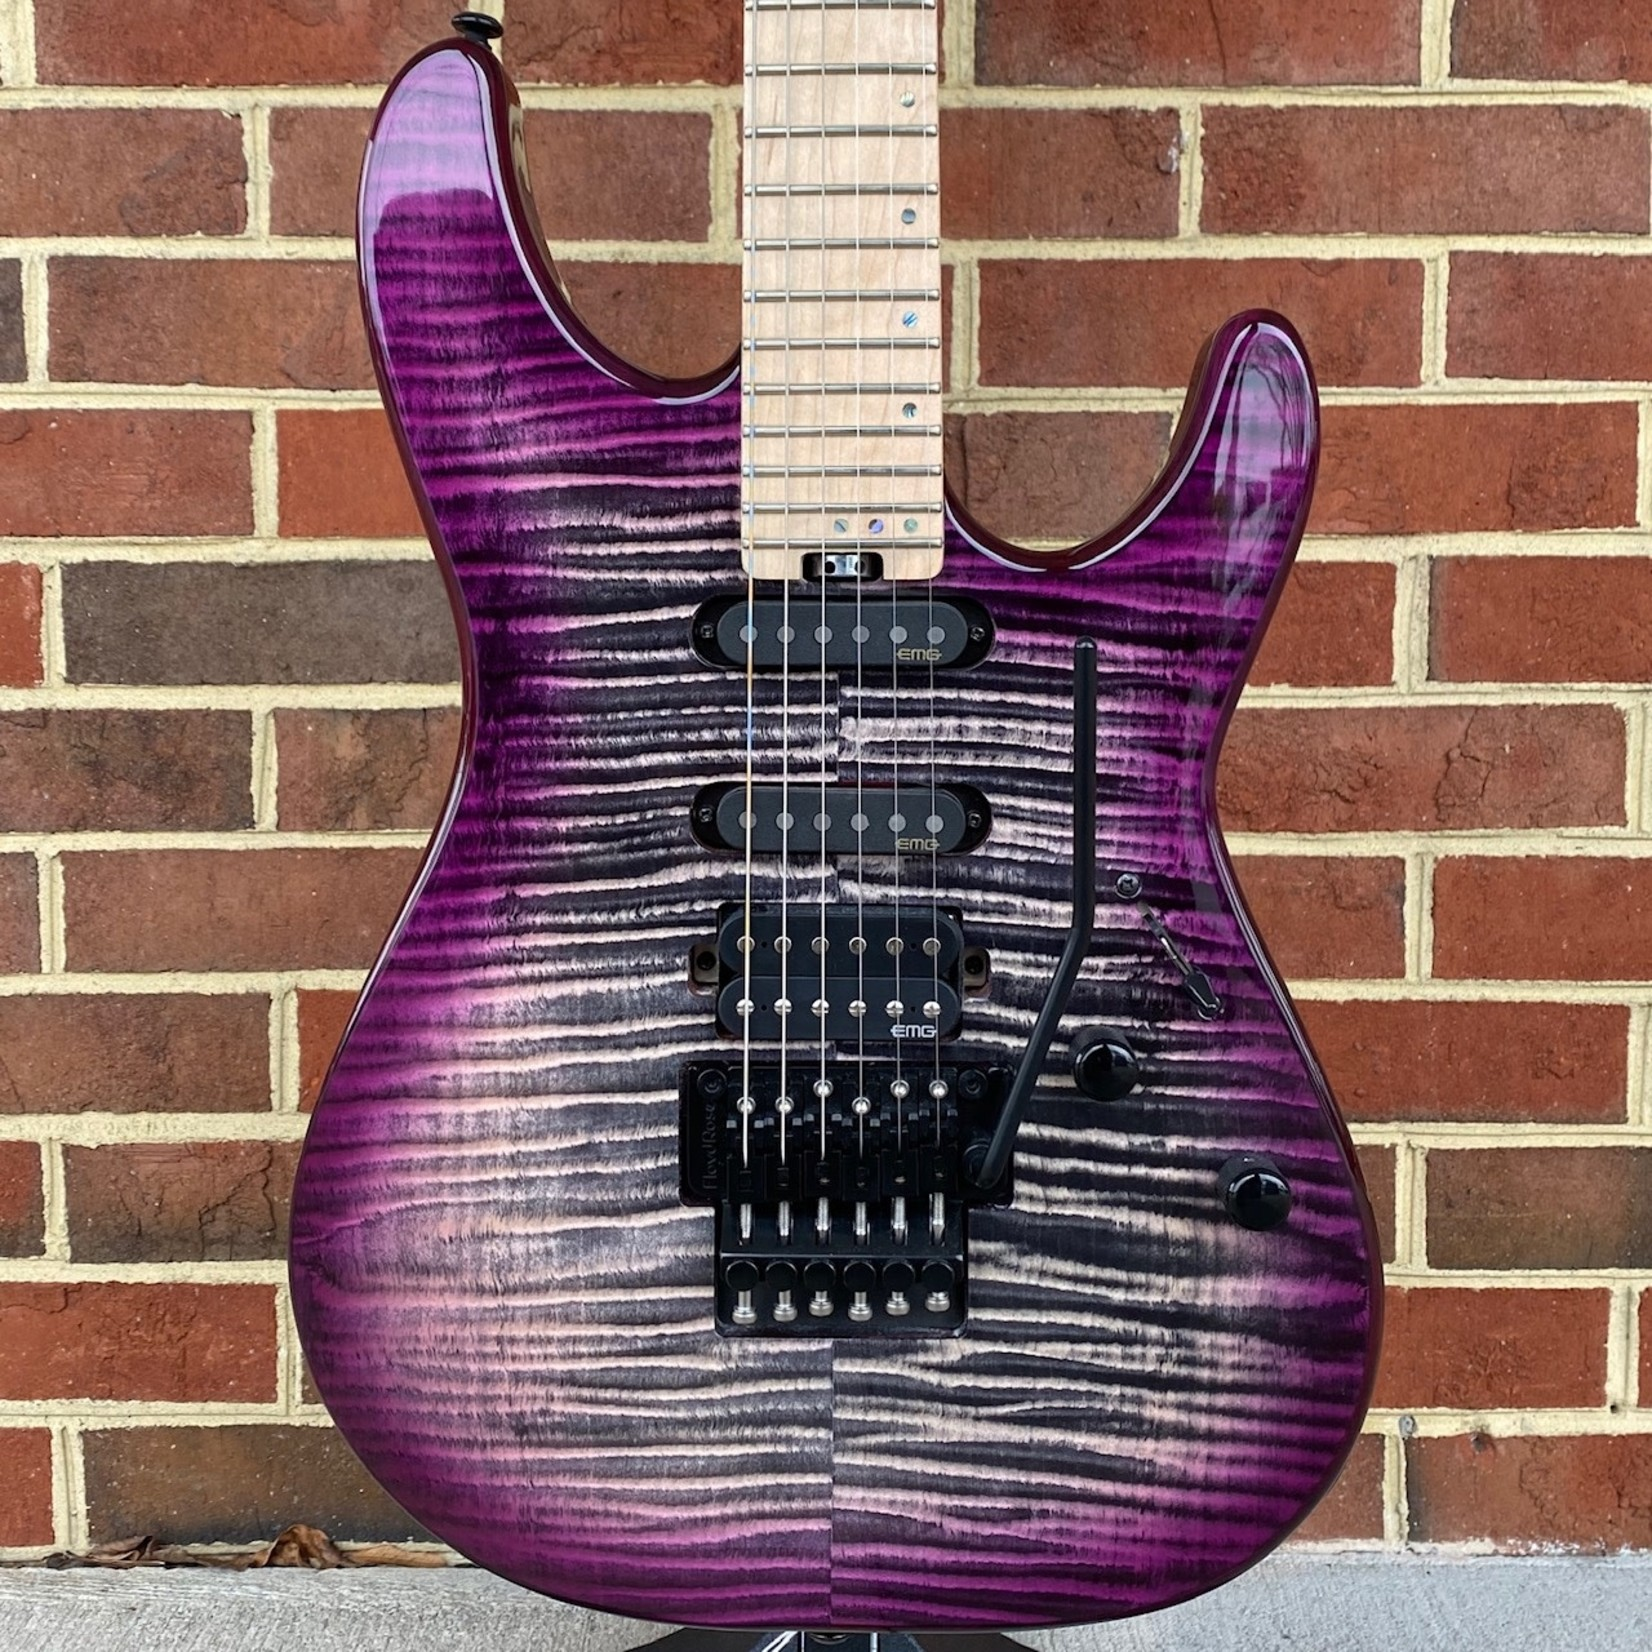 Schecter Guitar Research Schecter Sun Valley Super Shredder III, Aurora Burst, Quilted Maple Top, Floyd Rose, EMG Retro Active Pickups, Maple Fretboard, Maple Neck